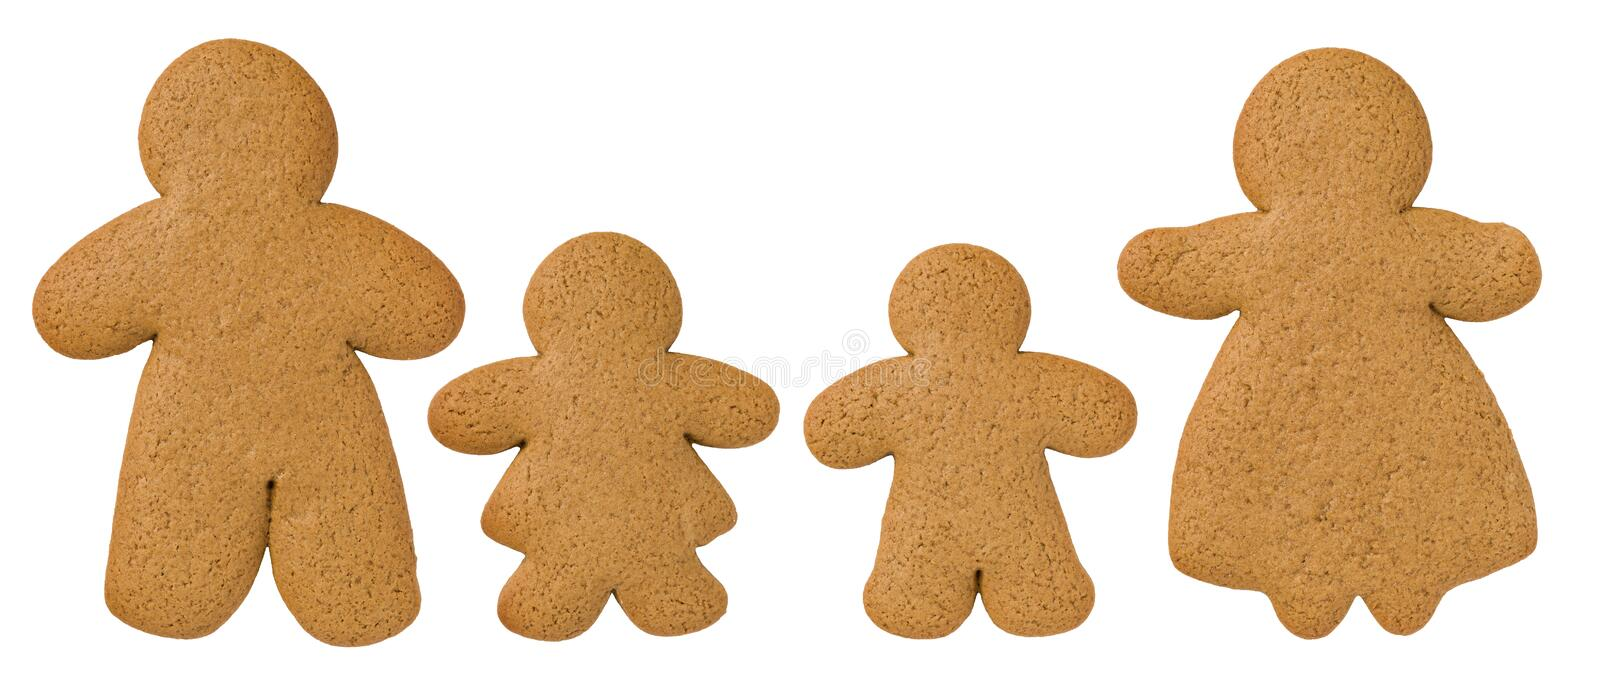 A gingerbread family. On a white background royalty free stock photo